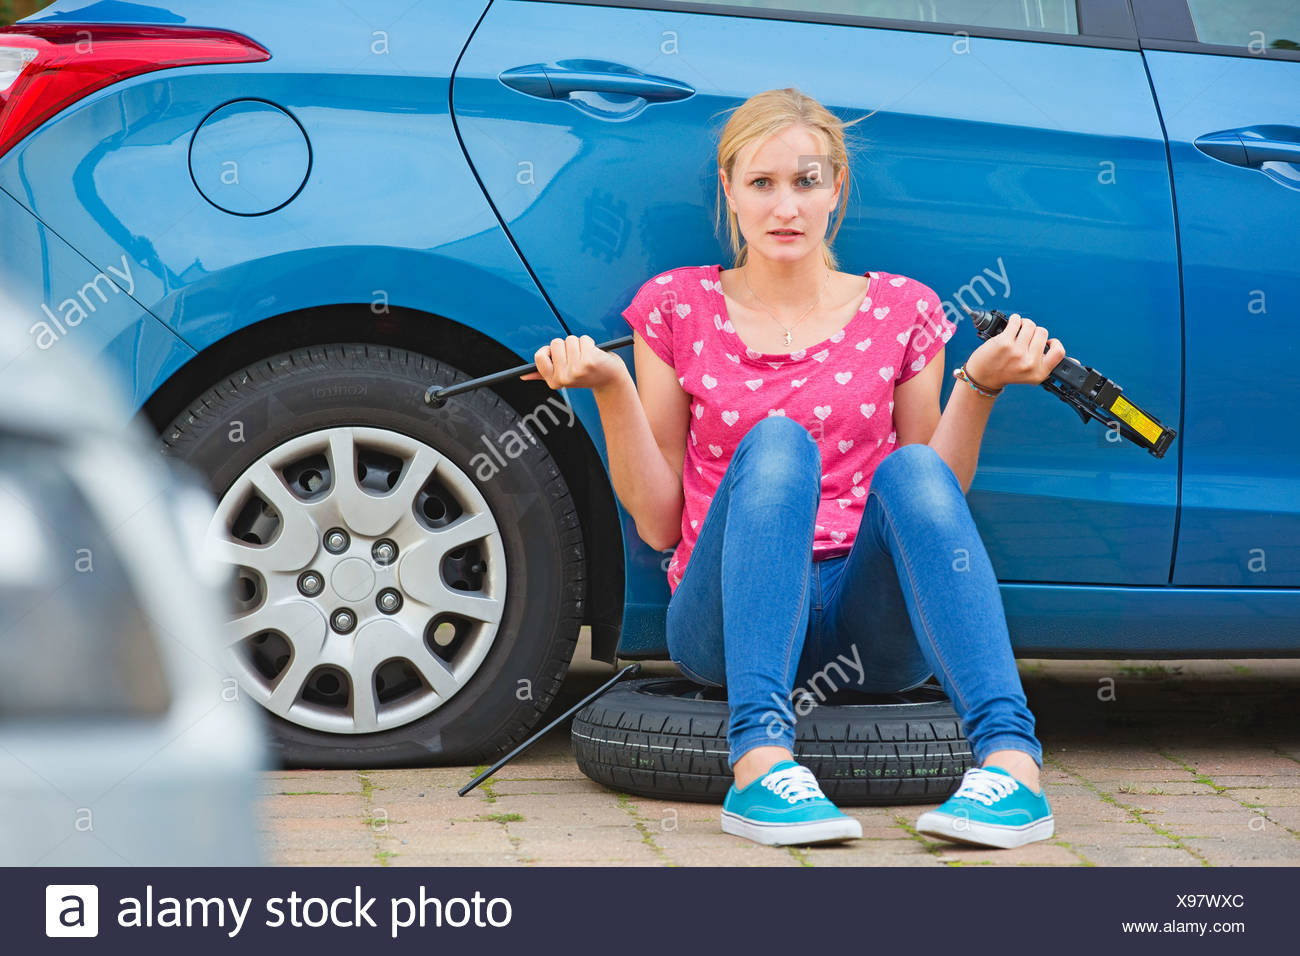 Frustrated Woman Trying To Change Flat Tyre On Car - Stock Image